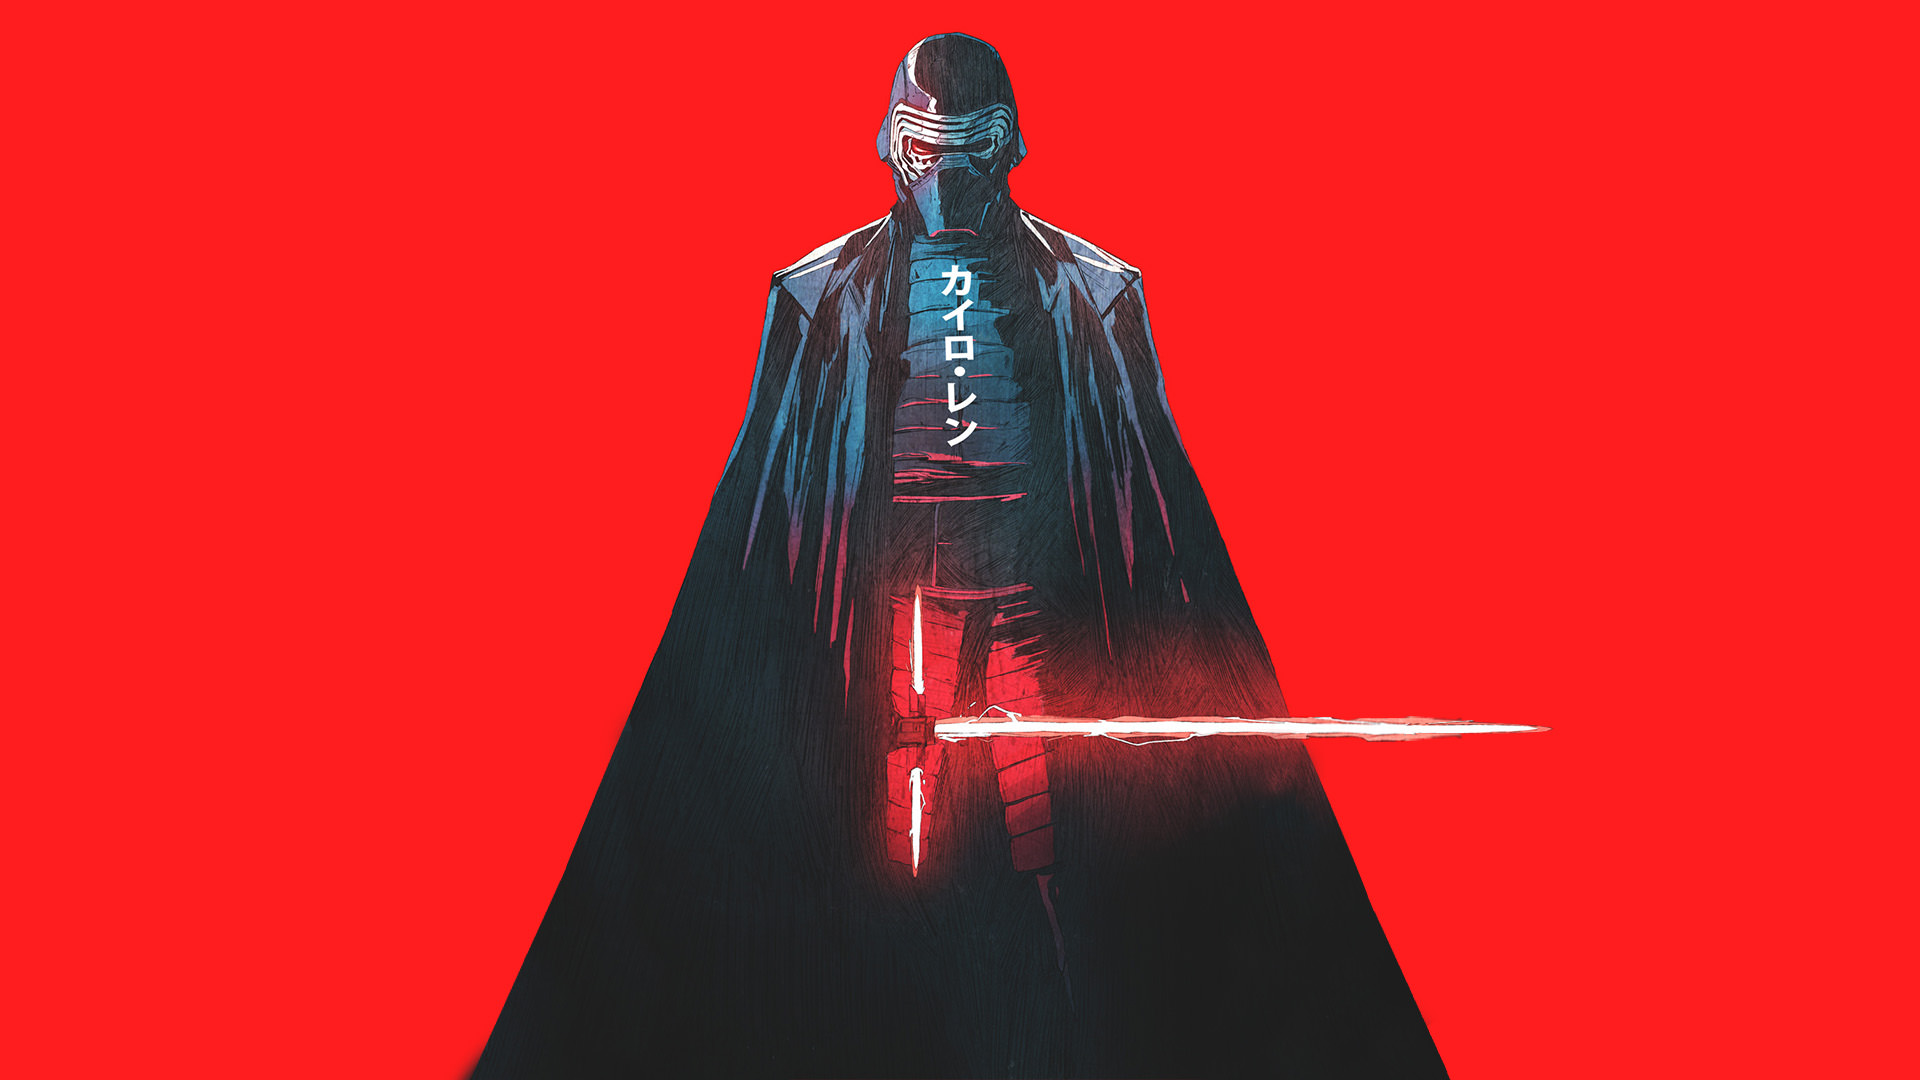 Kylo Ren Star Wars Artwork Wallpaper Hd Movies 4k Wallpapers Images Photos And Background